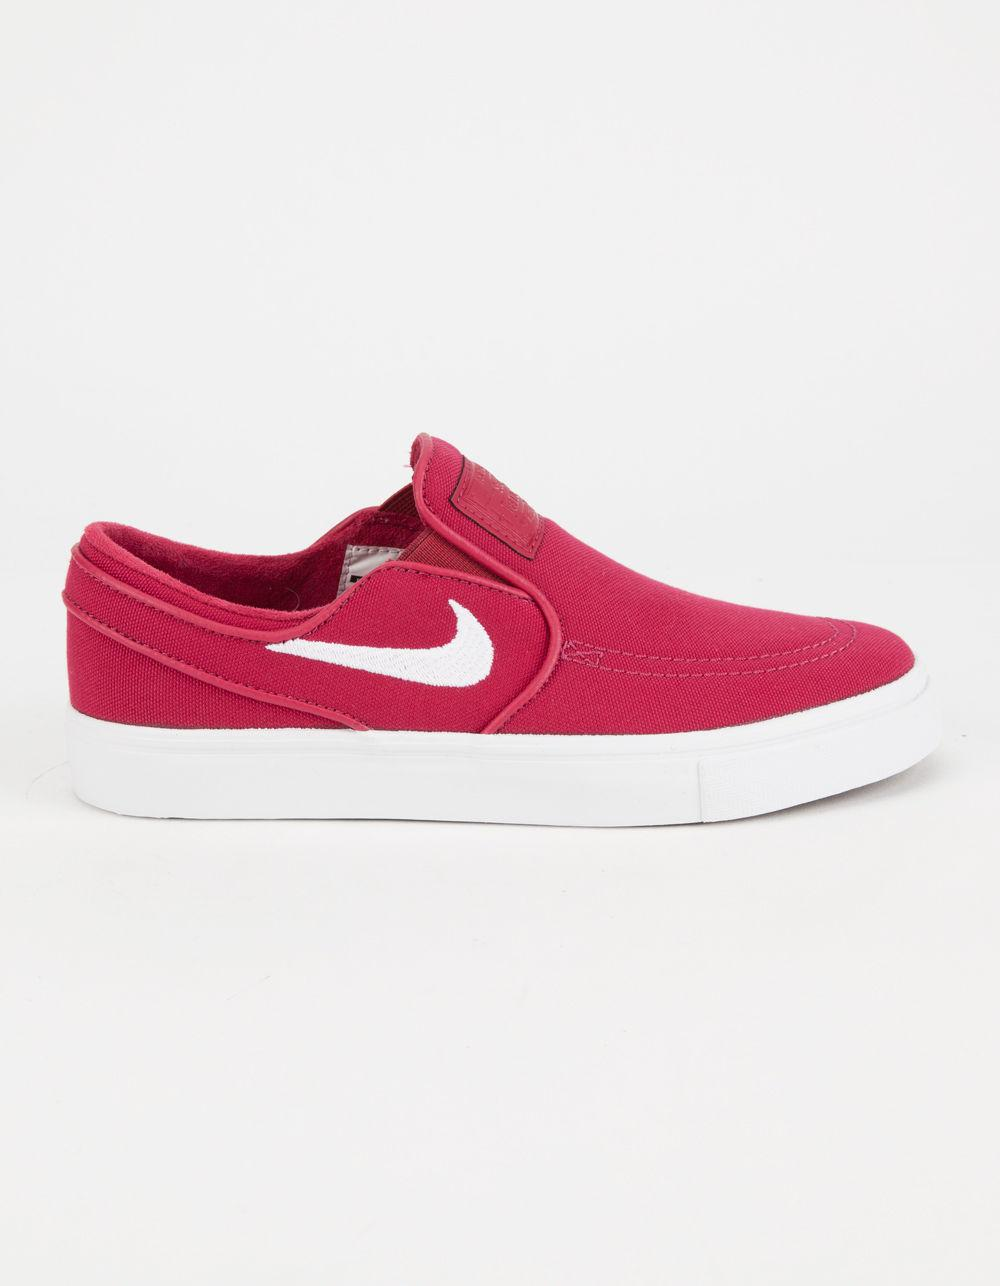 watch 35e12 c10bc Nike Sb Zoom Stefan Janoski Slip-on Canvas Womens Shoes in Red - Lyst